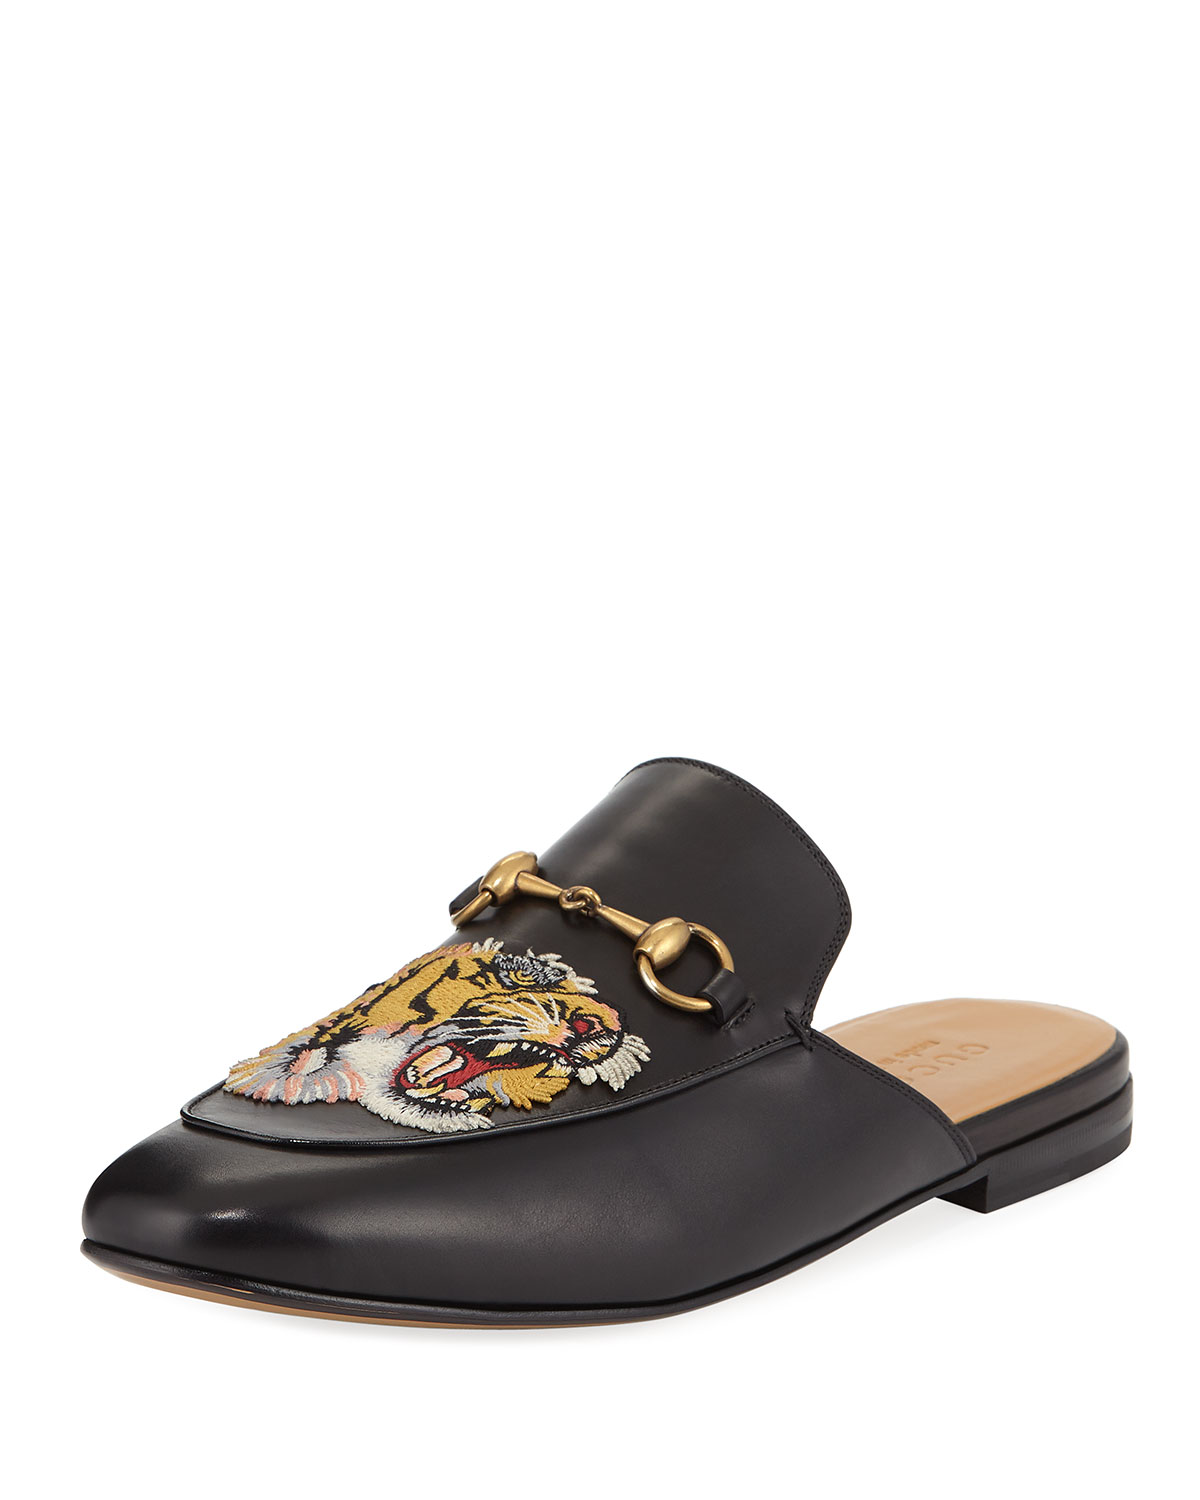 61b8d9055 Gucci Kings Tiger Leather Mule | Neiman Marcus